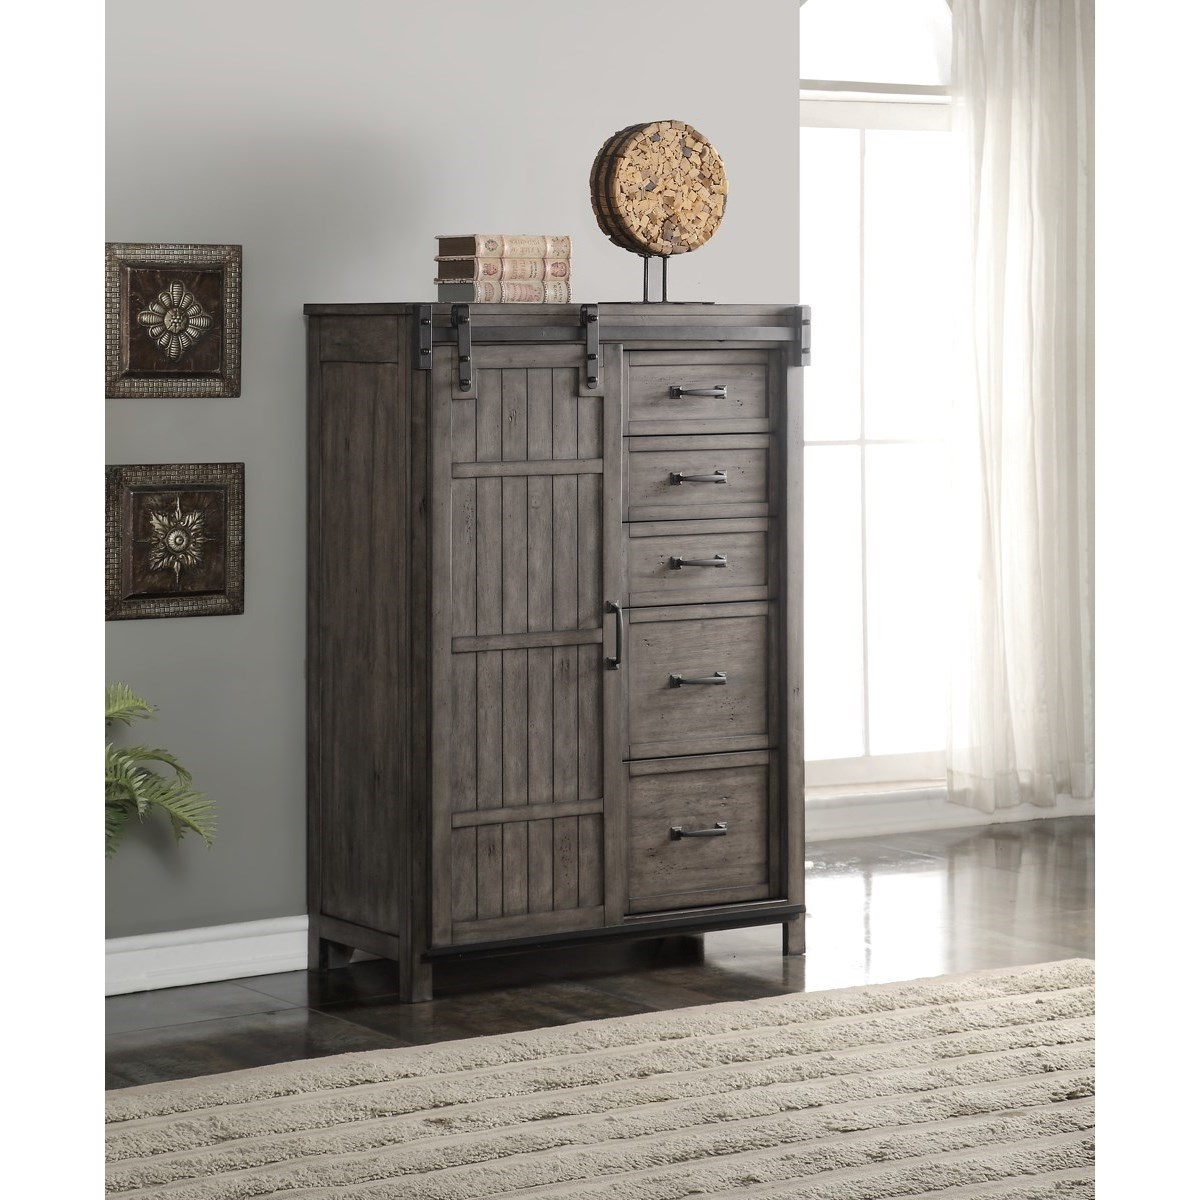 Legends furniture storehouse collection storehouse 5 drawer chest item number zstr 7016